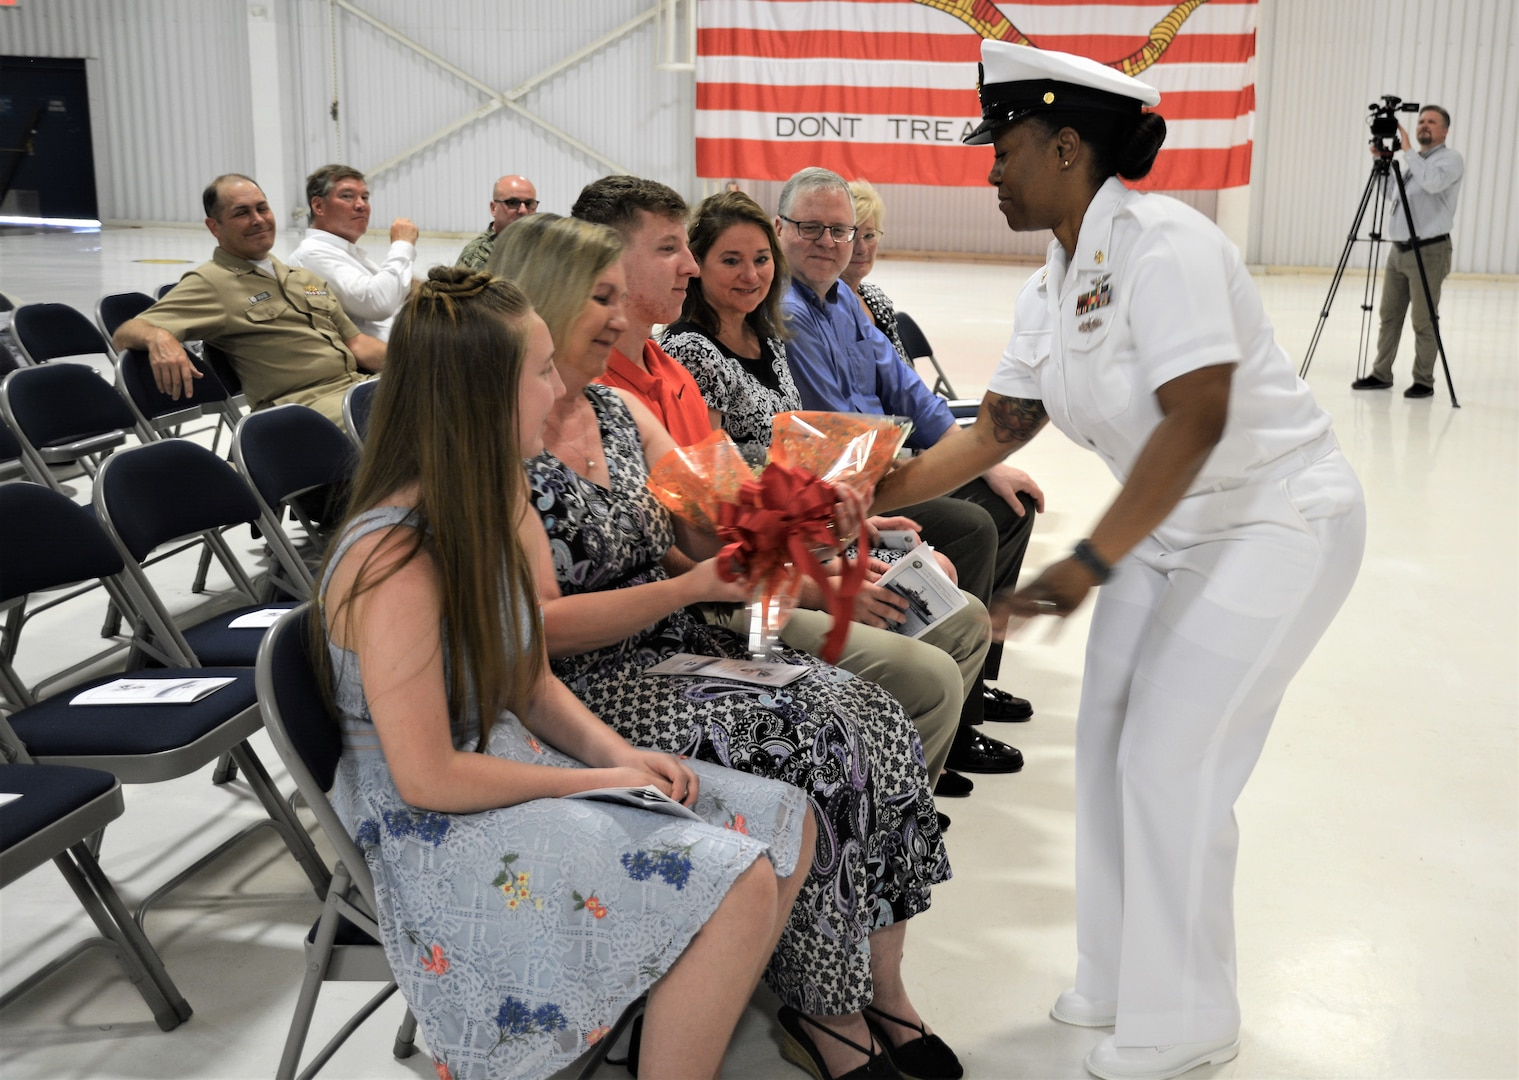 IMAGE: (Center) Chief Logistics Specialist Kisha Vilabrera presents flowers to Cmdr. Joseph Oravec's wife honoring her role on the home front during a traditional Change of Command ceremony at Naval Air Station (NAS) Oceana's Center for Naval Aviation Technical Training Unit's ceremonial hangar aboard NAS Oceana June 27. Oravec relieved Cmdr. Andrew Hoffman and became Naval Surface Warfare Center Dahlgren Division, Dam Neck Activity's 28th commanding officer.